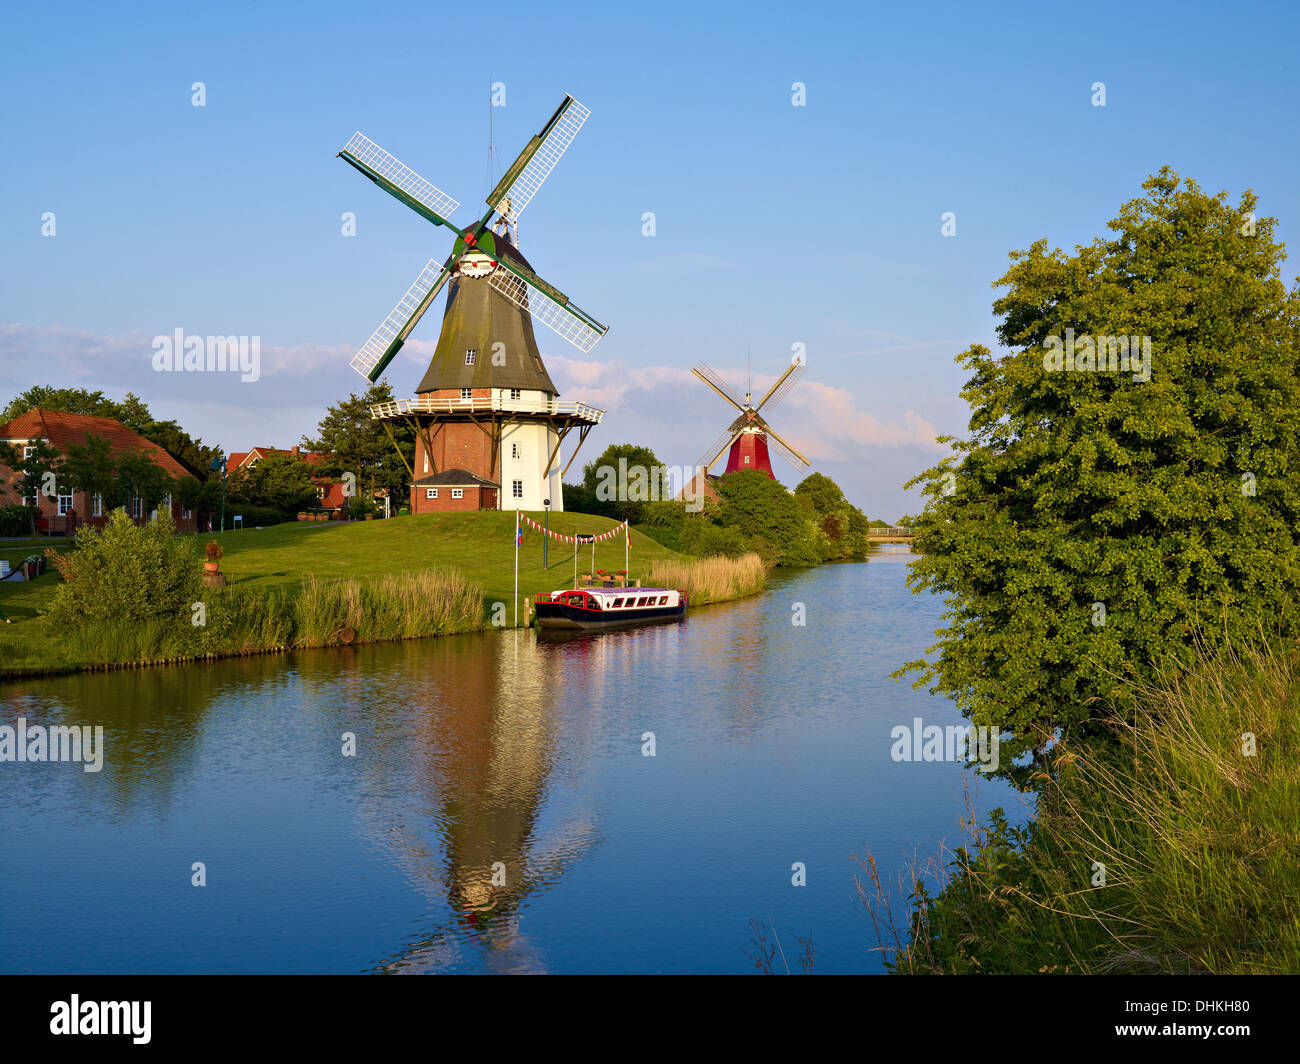 Windmills on the sewer in Greetsiel, East Frisia, Germany - Stock Image